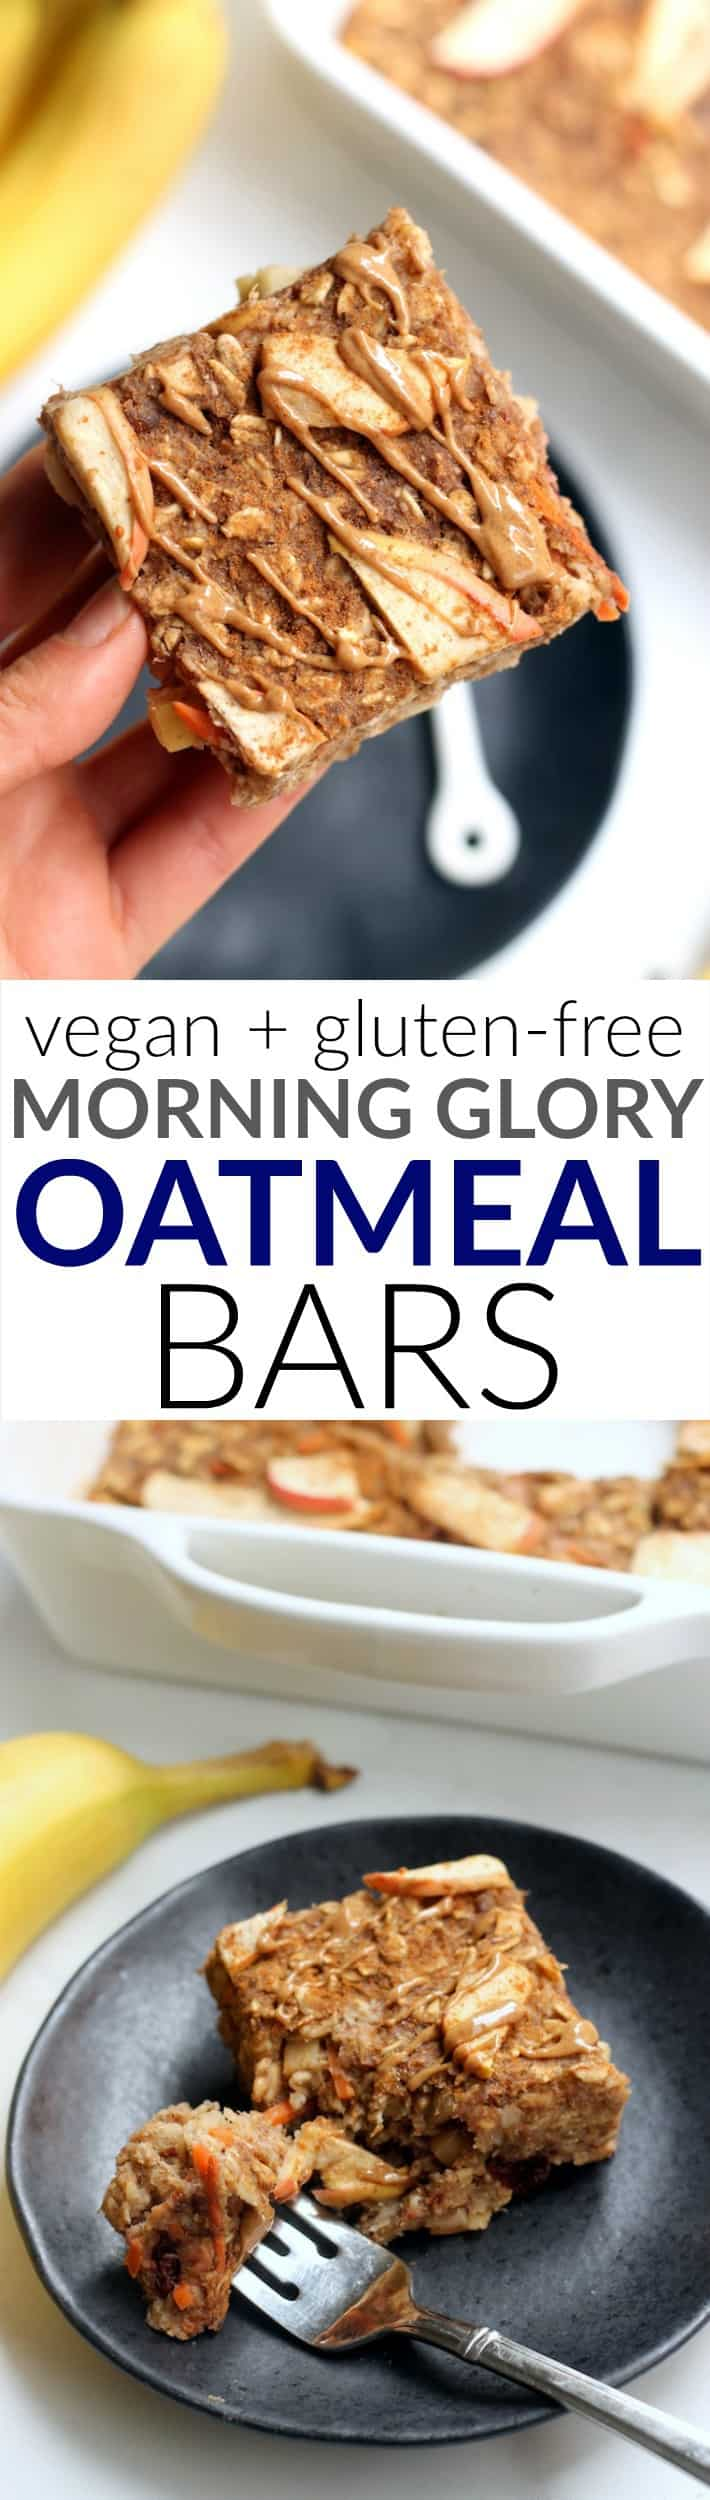 These Morning Glory Baked Oatmeal Bars are a tasty, filling, nutrient-dense breakfast packed with whole grains and warm fall flavors. They also make a great grab-and go snack that